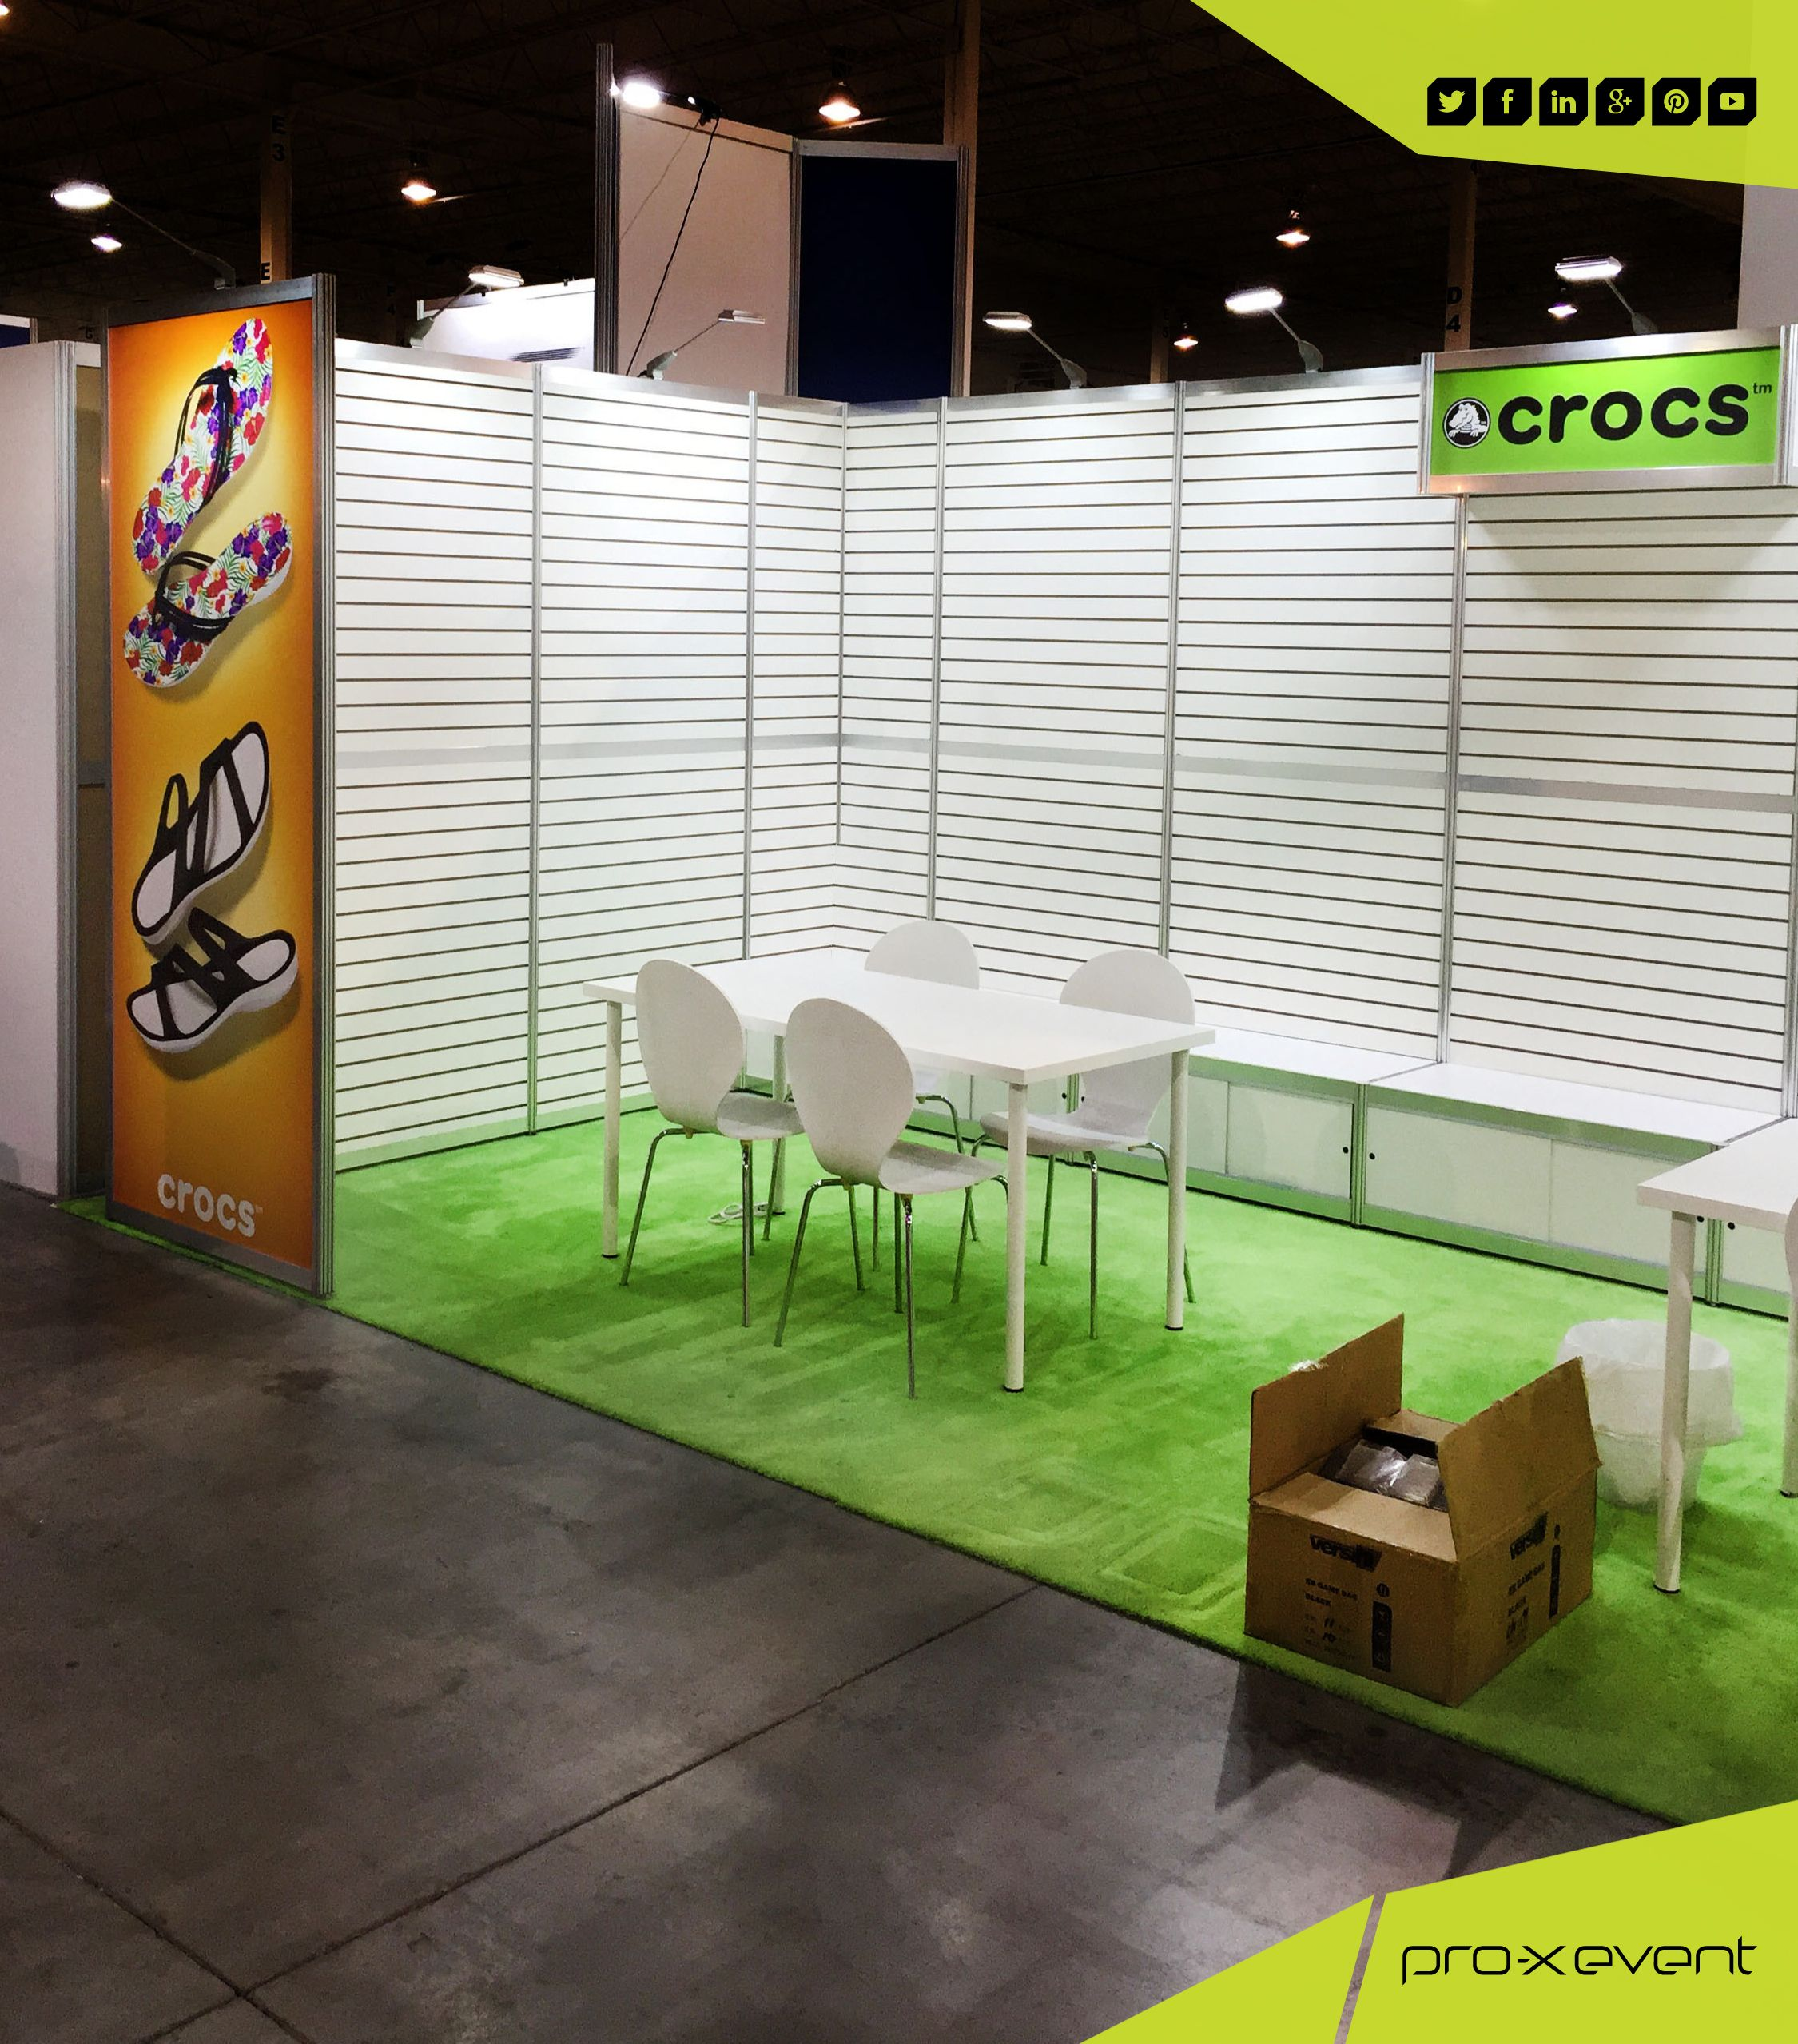 To A Great Exhibit Display We Designed And Built For Crocs At The